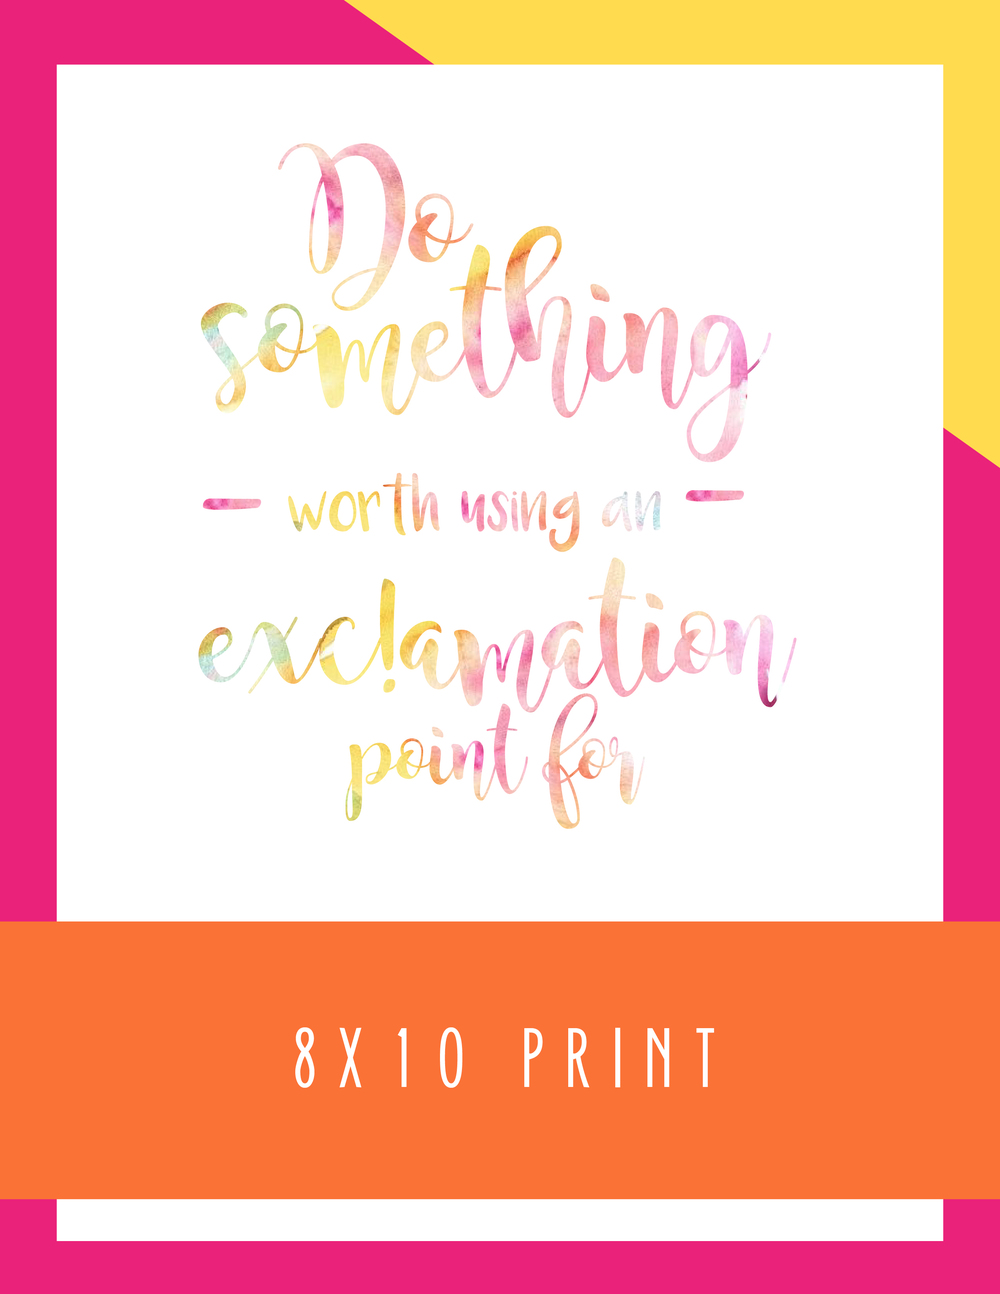 Bold & Pop: So Something Worth Using an Exclamation Point for 8x10 Print